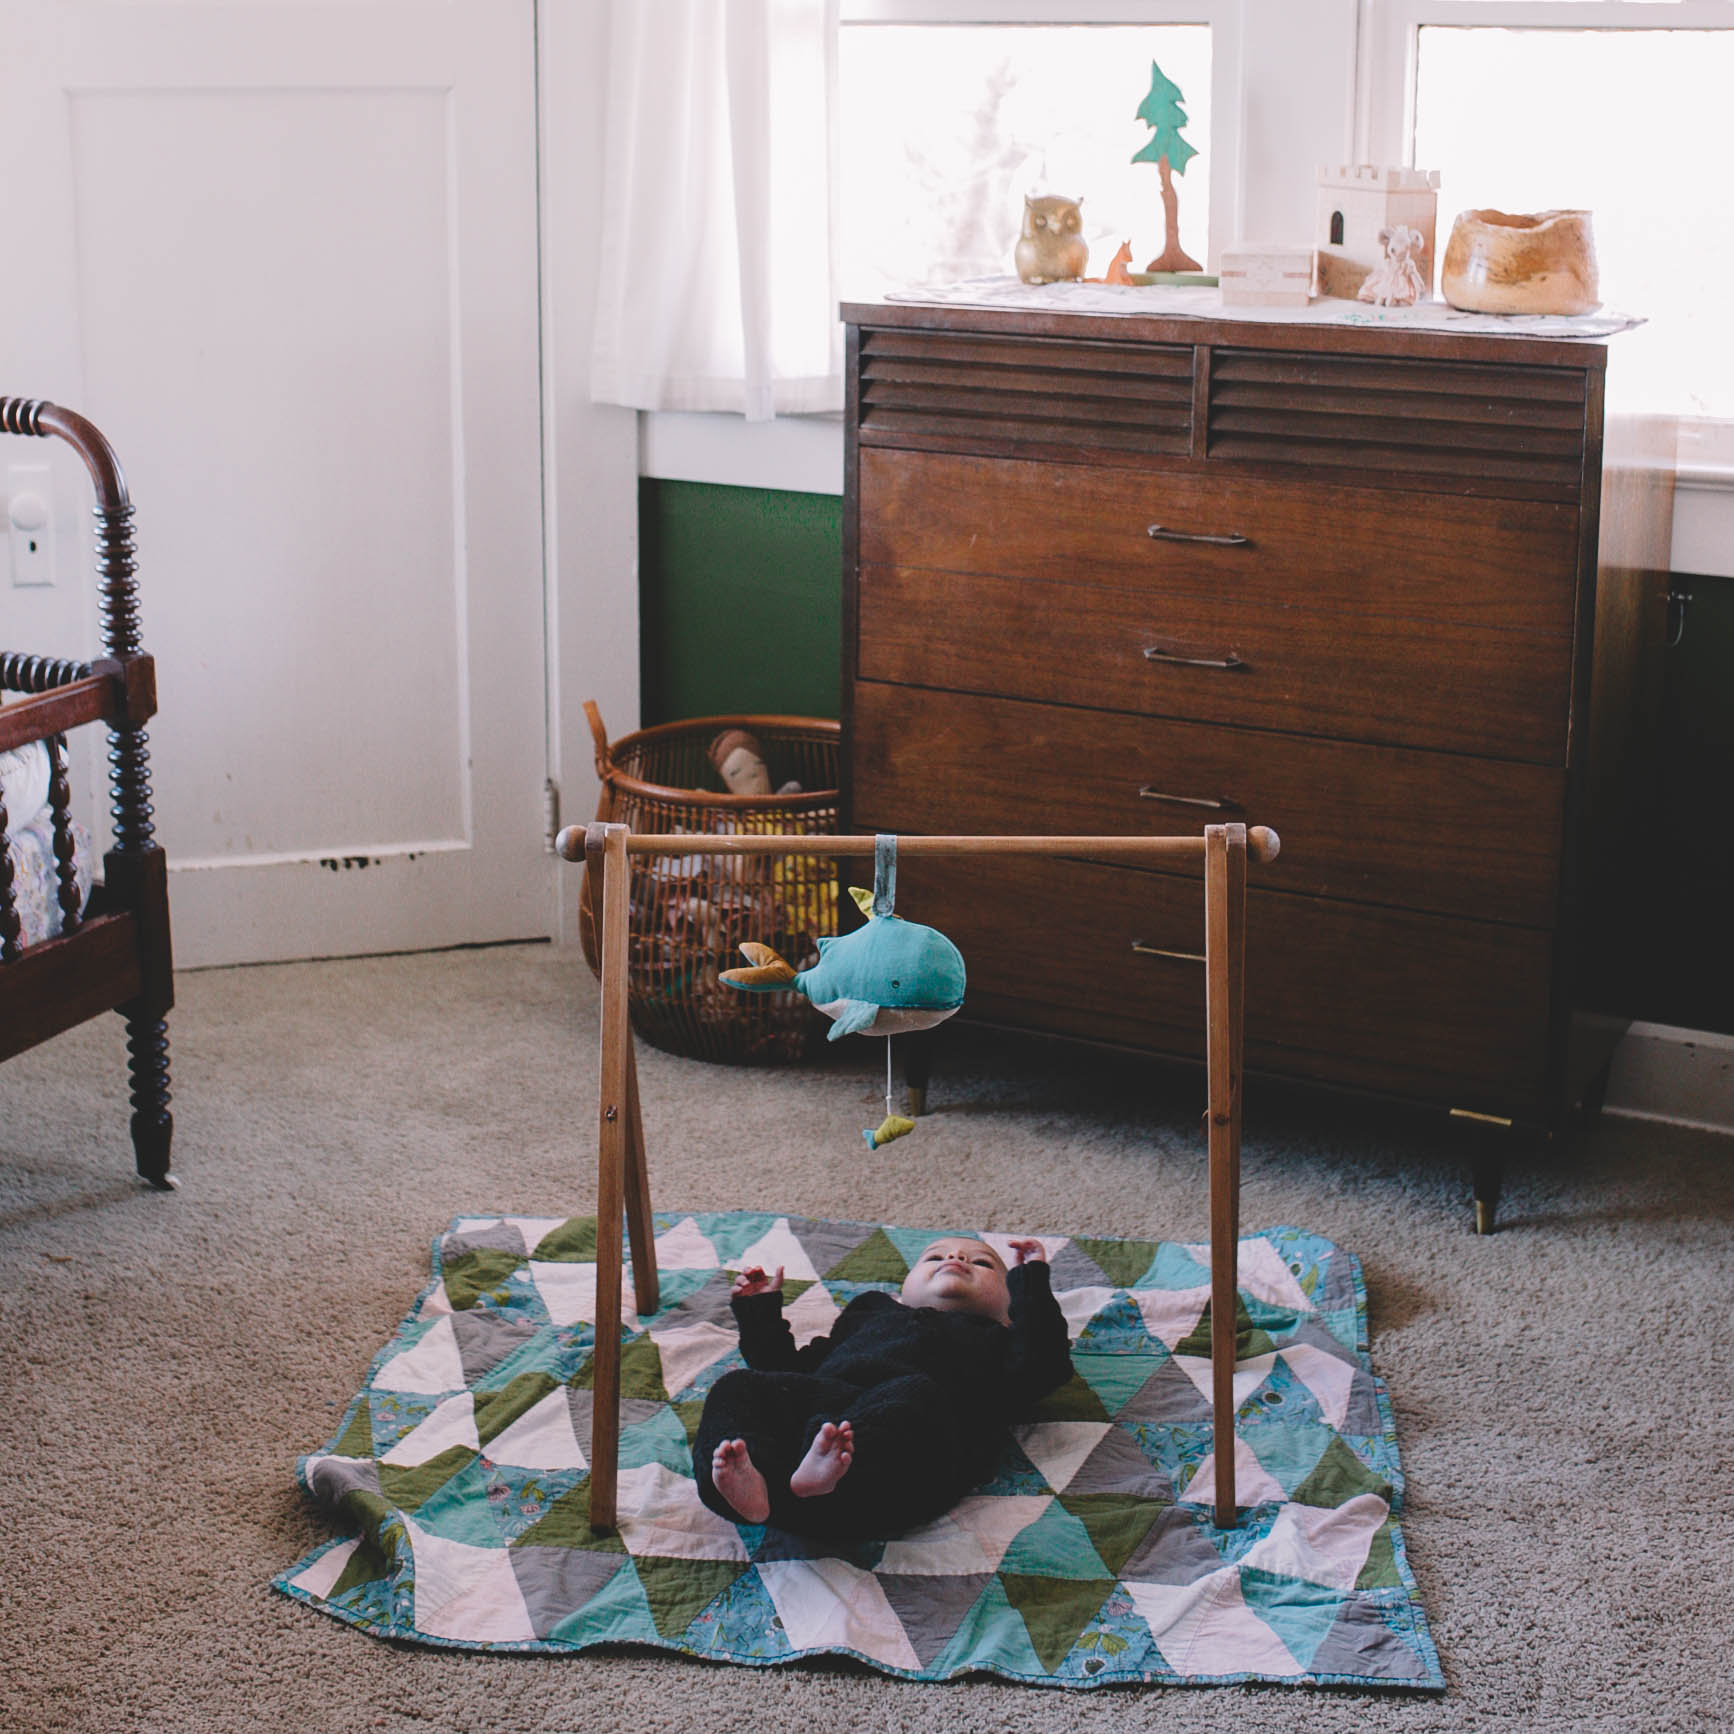 Play mat and baby gym together